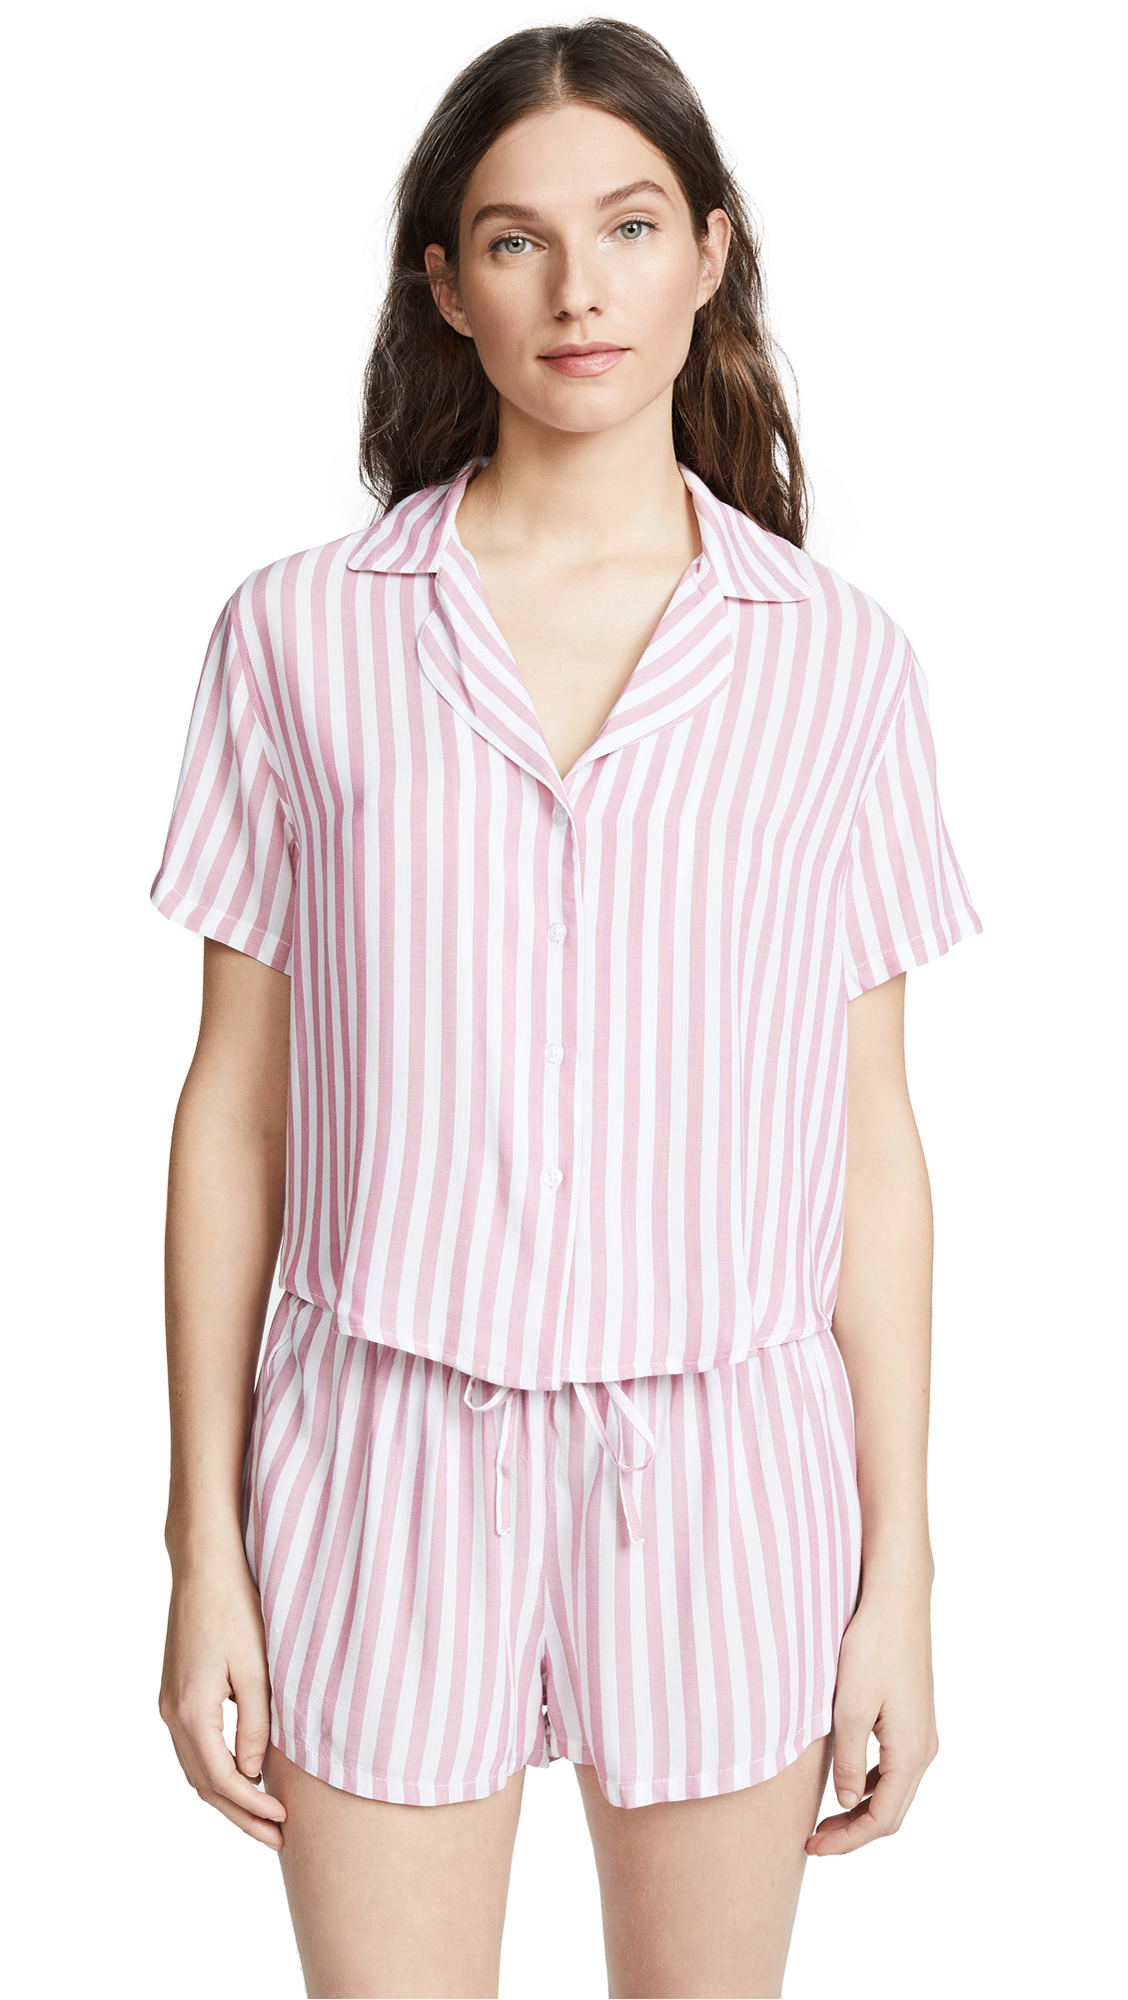 RAILS Short Sleeve Short PJ Set In Garnet White Stripe